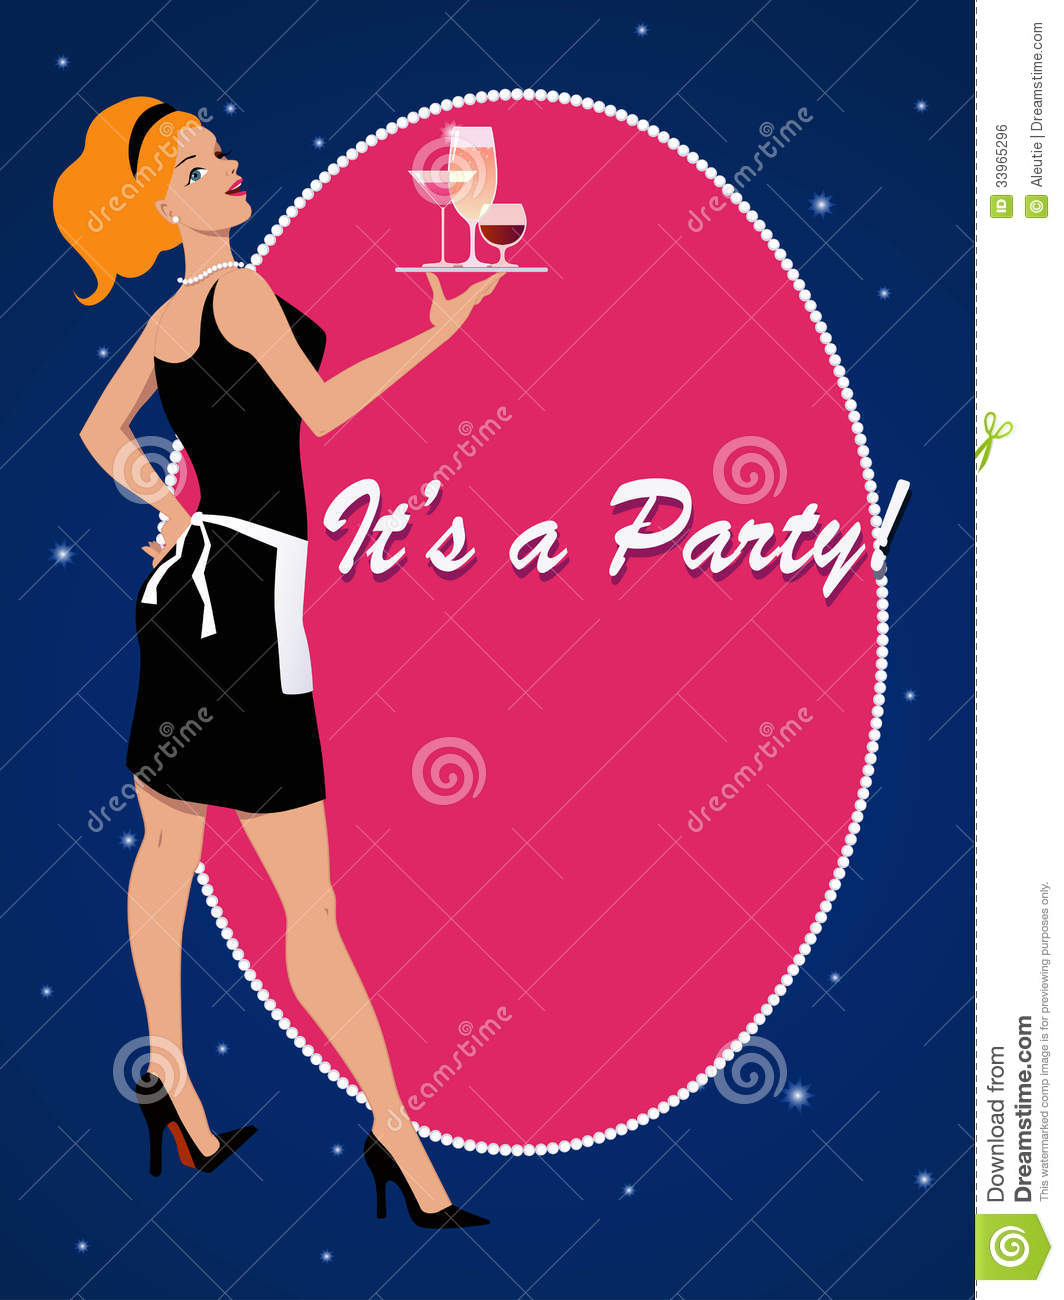 Party Invitation With A Cocktail Waitress Royalty Free Image – Cocktail Party Invitations Templates Free